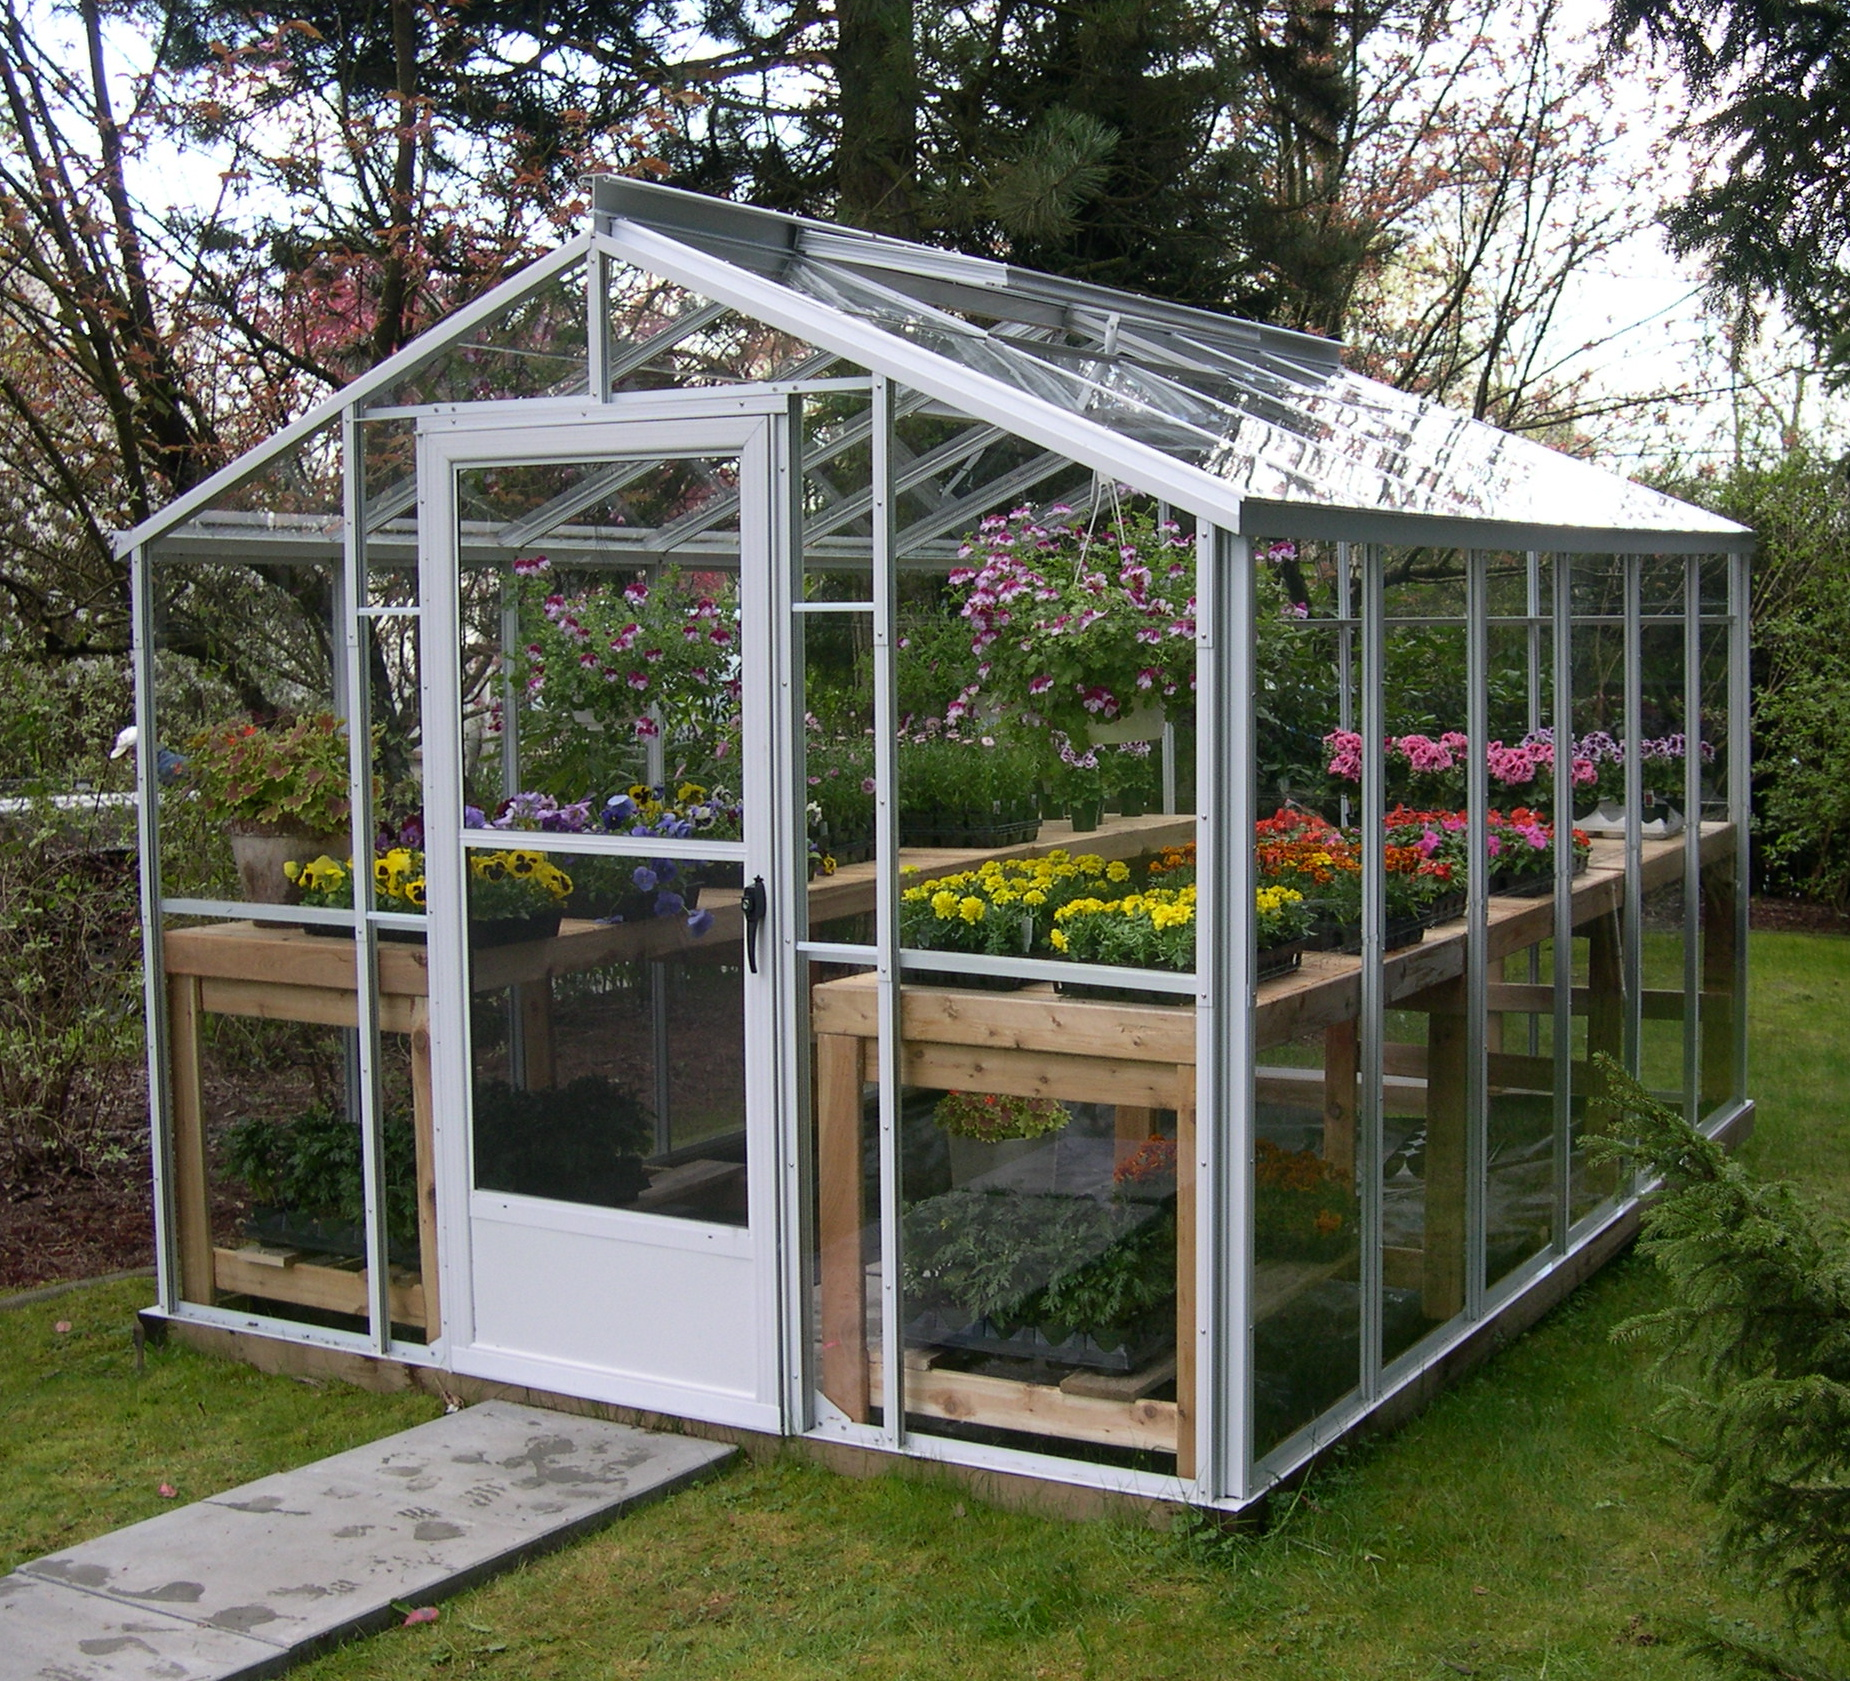 Small greenhouse plans canada for Apartment greenhouse kits